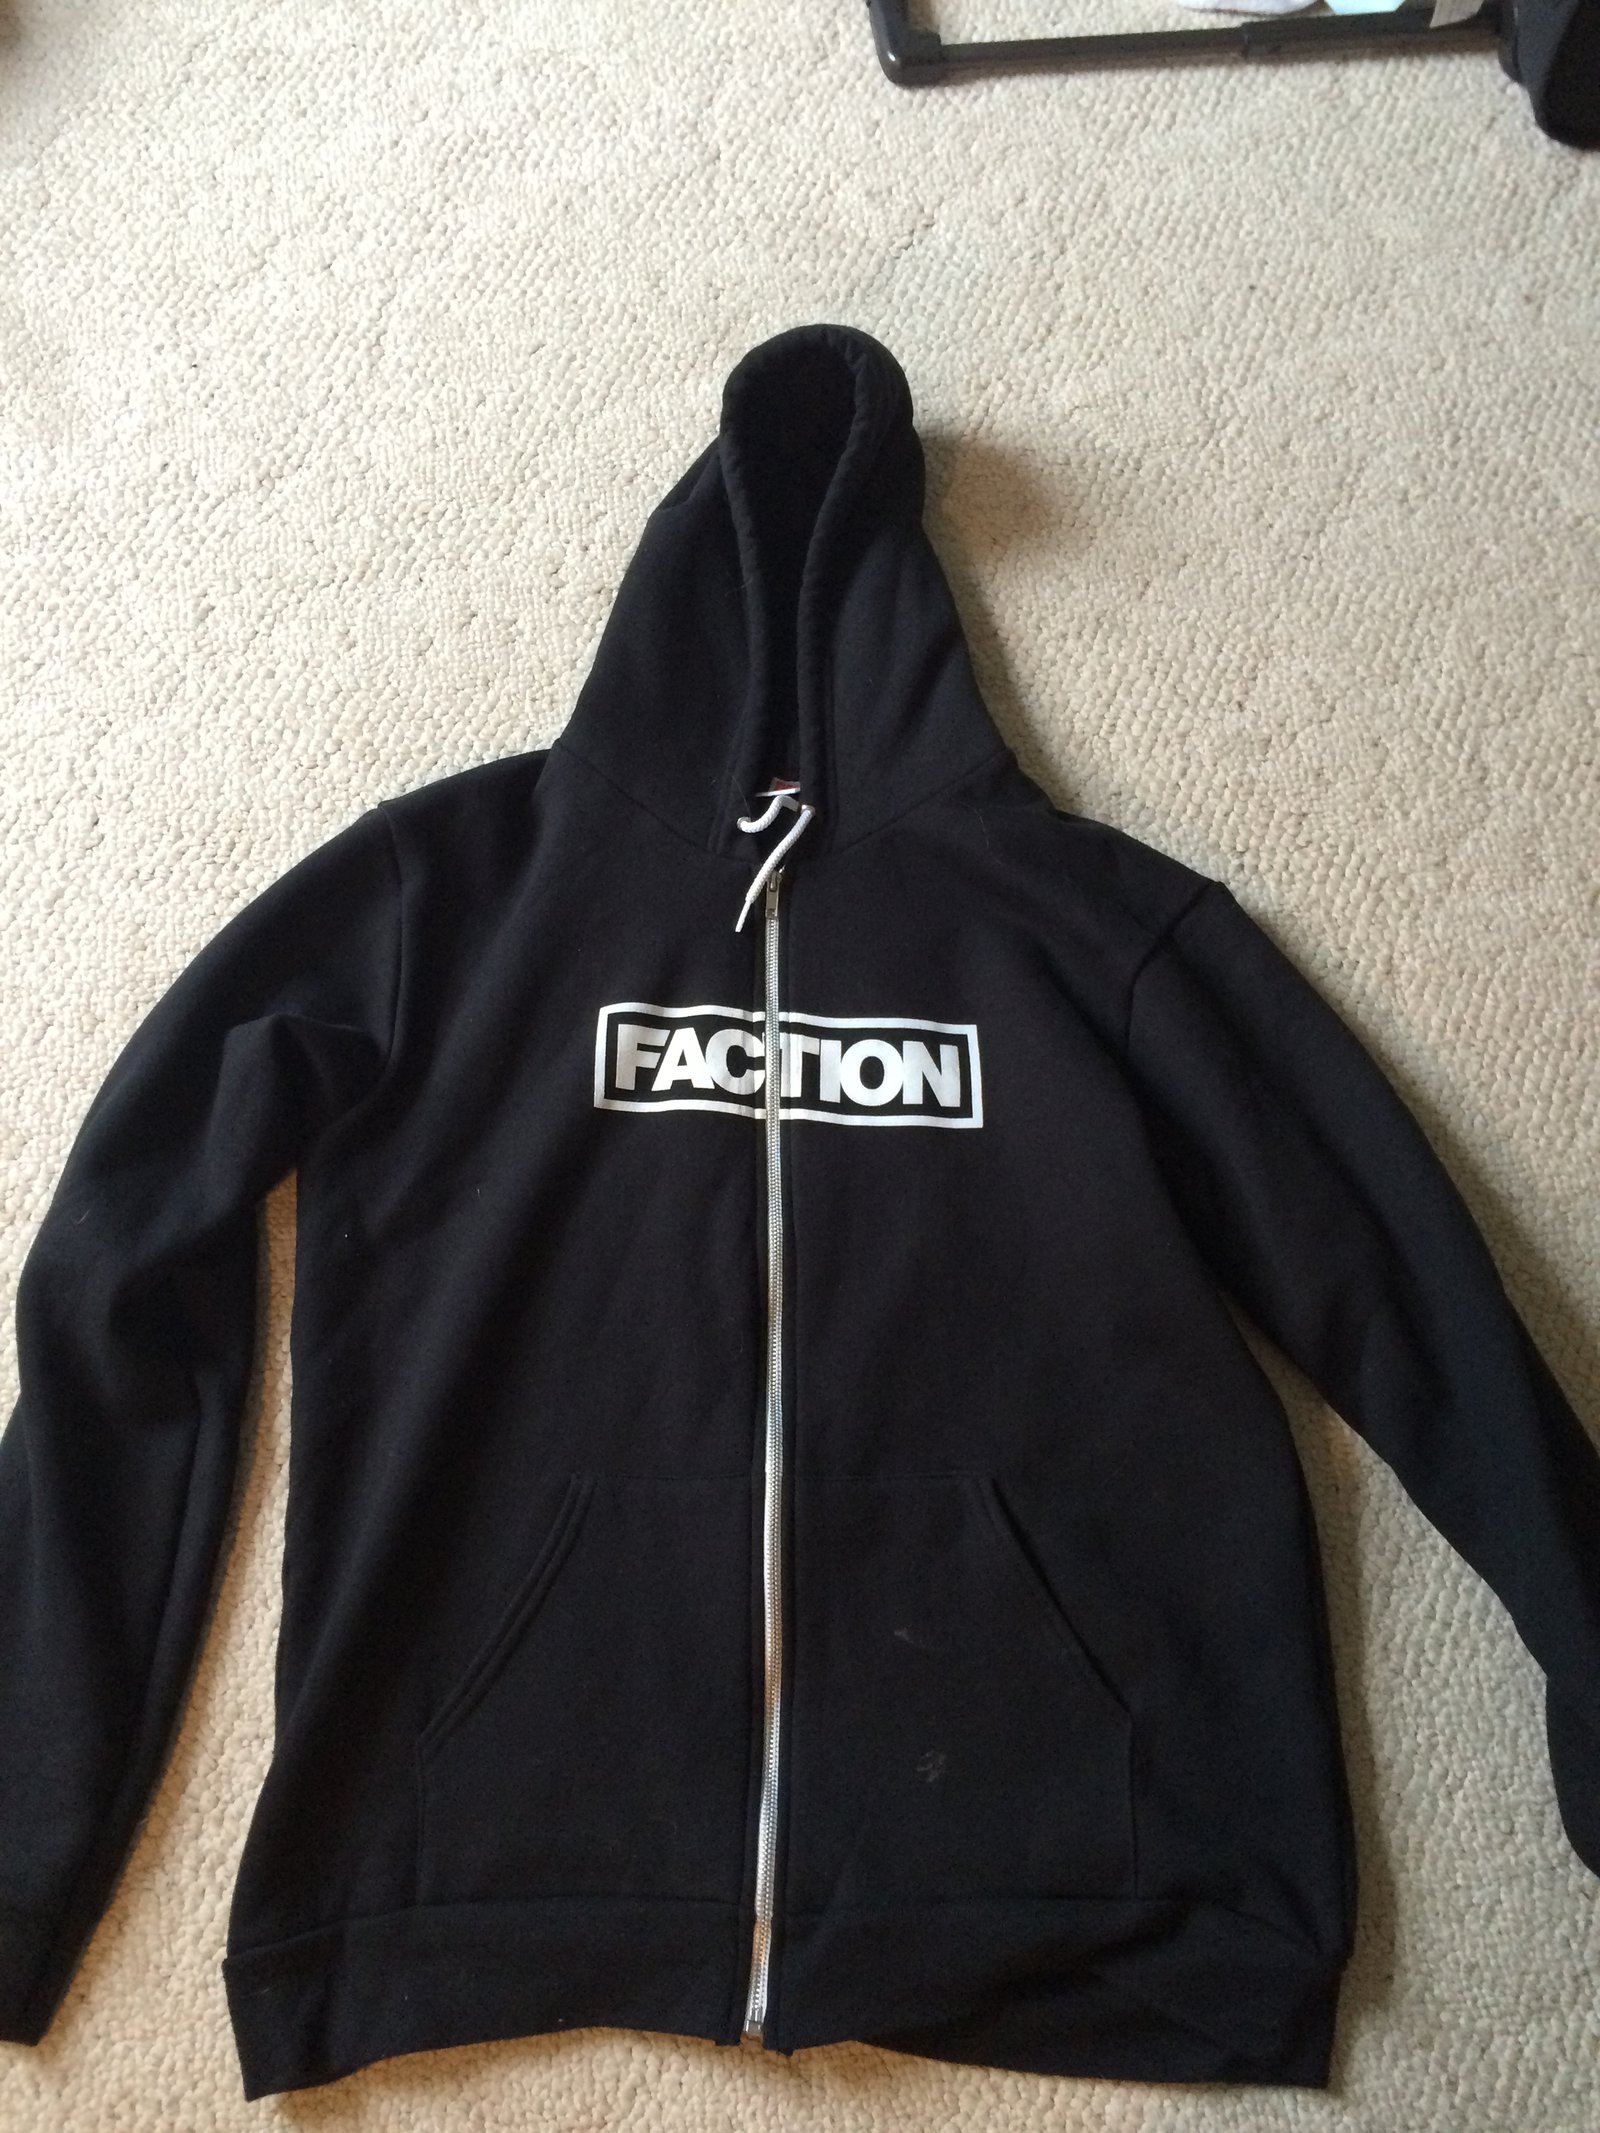 xl faction hoody